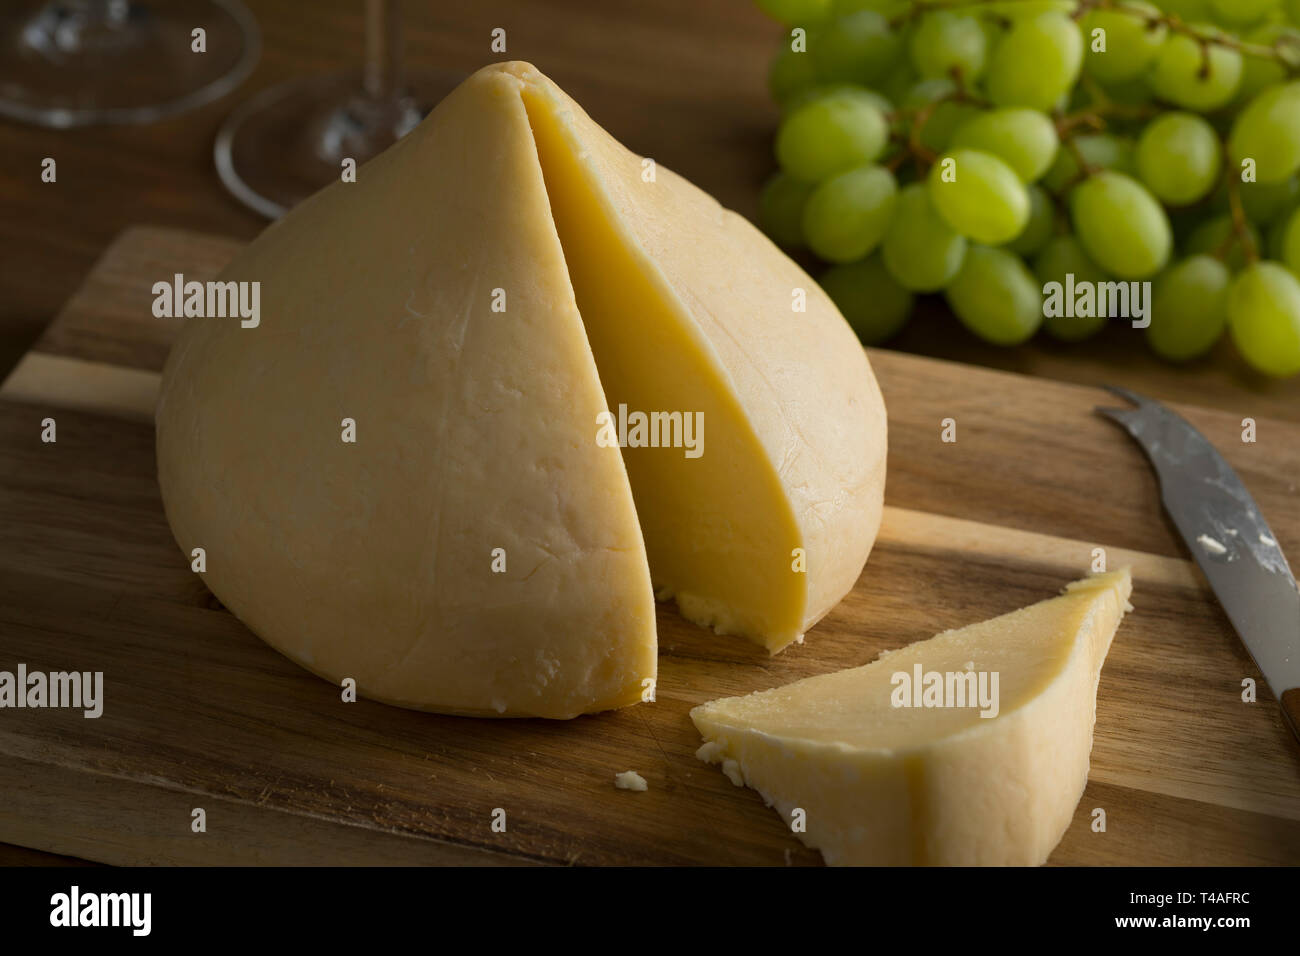 Tetilla cows cheese made in Galicia, Spain - Stock Image